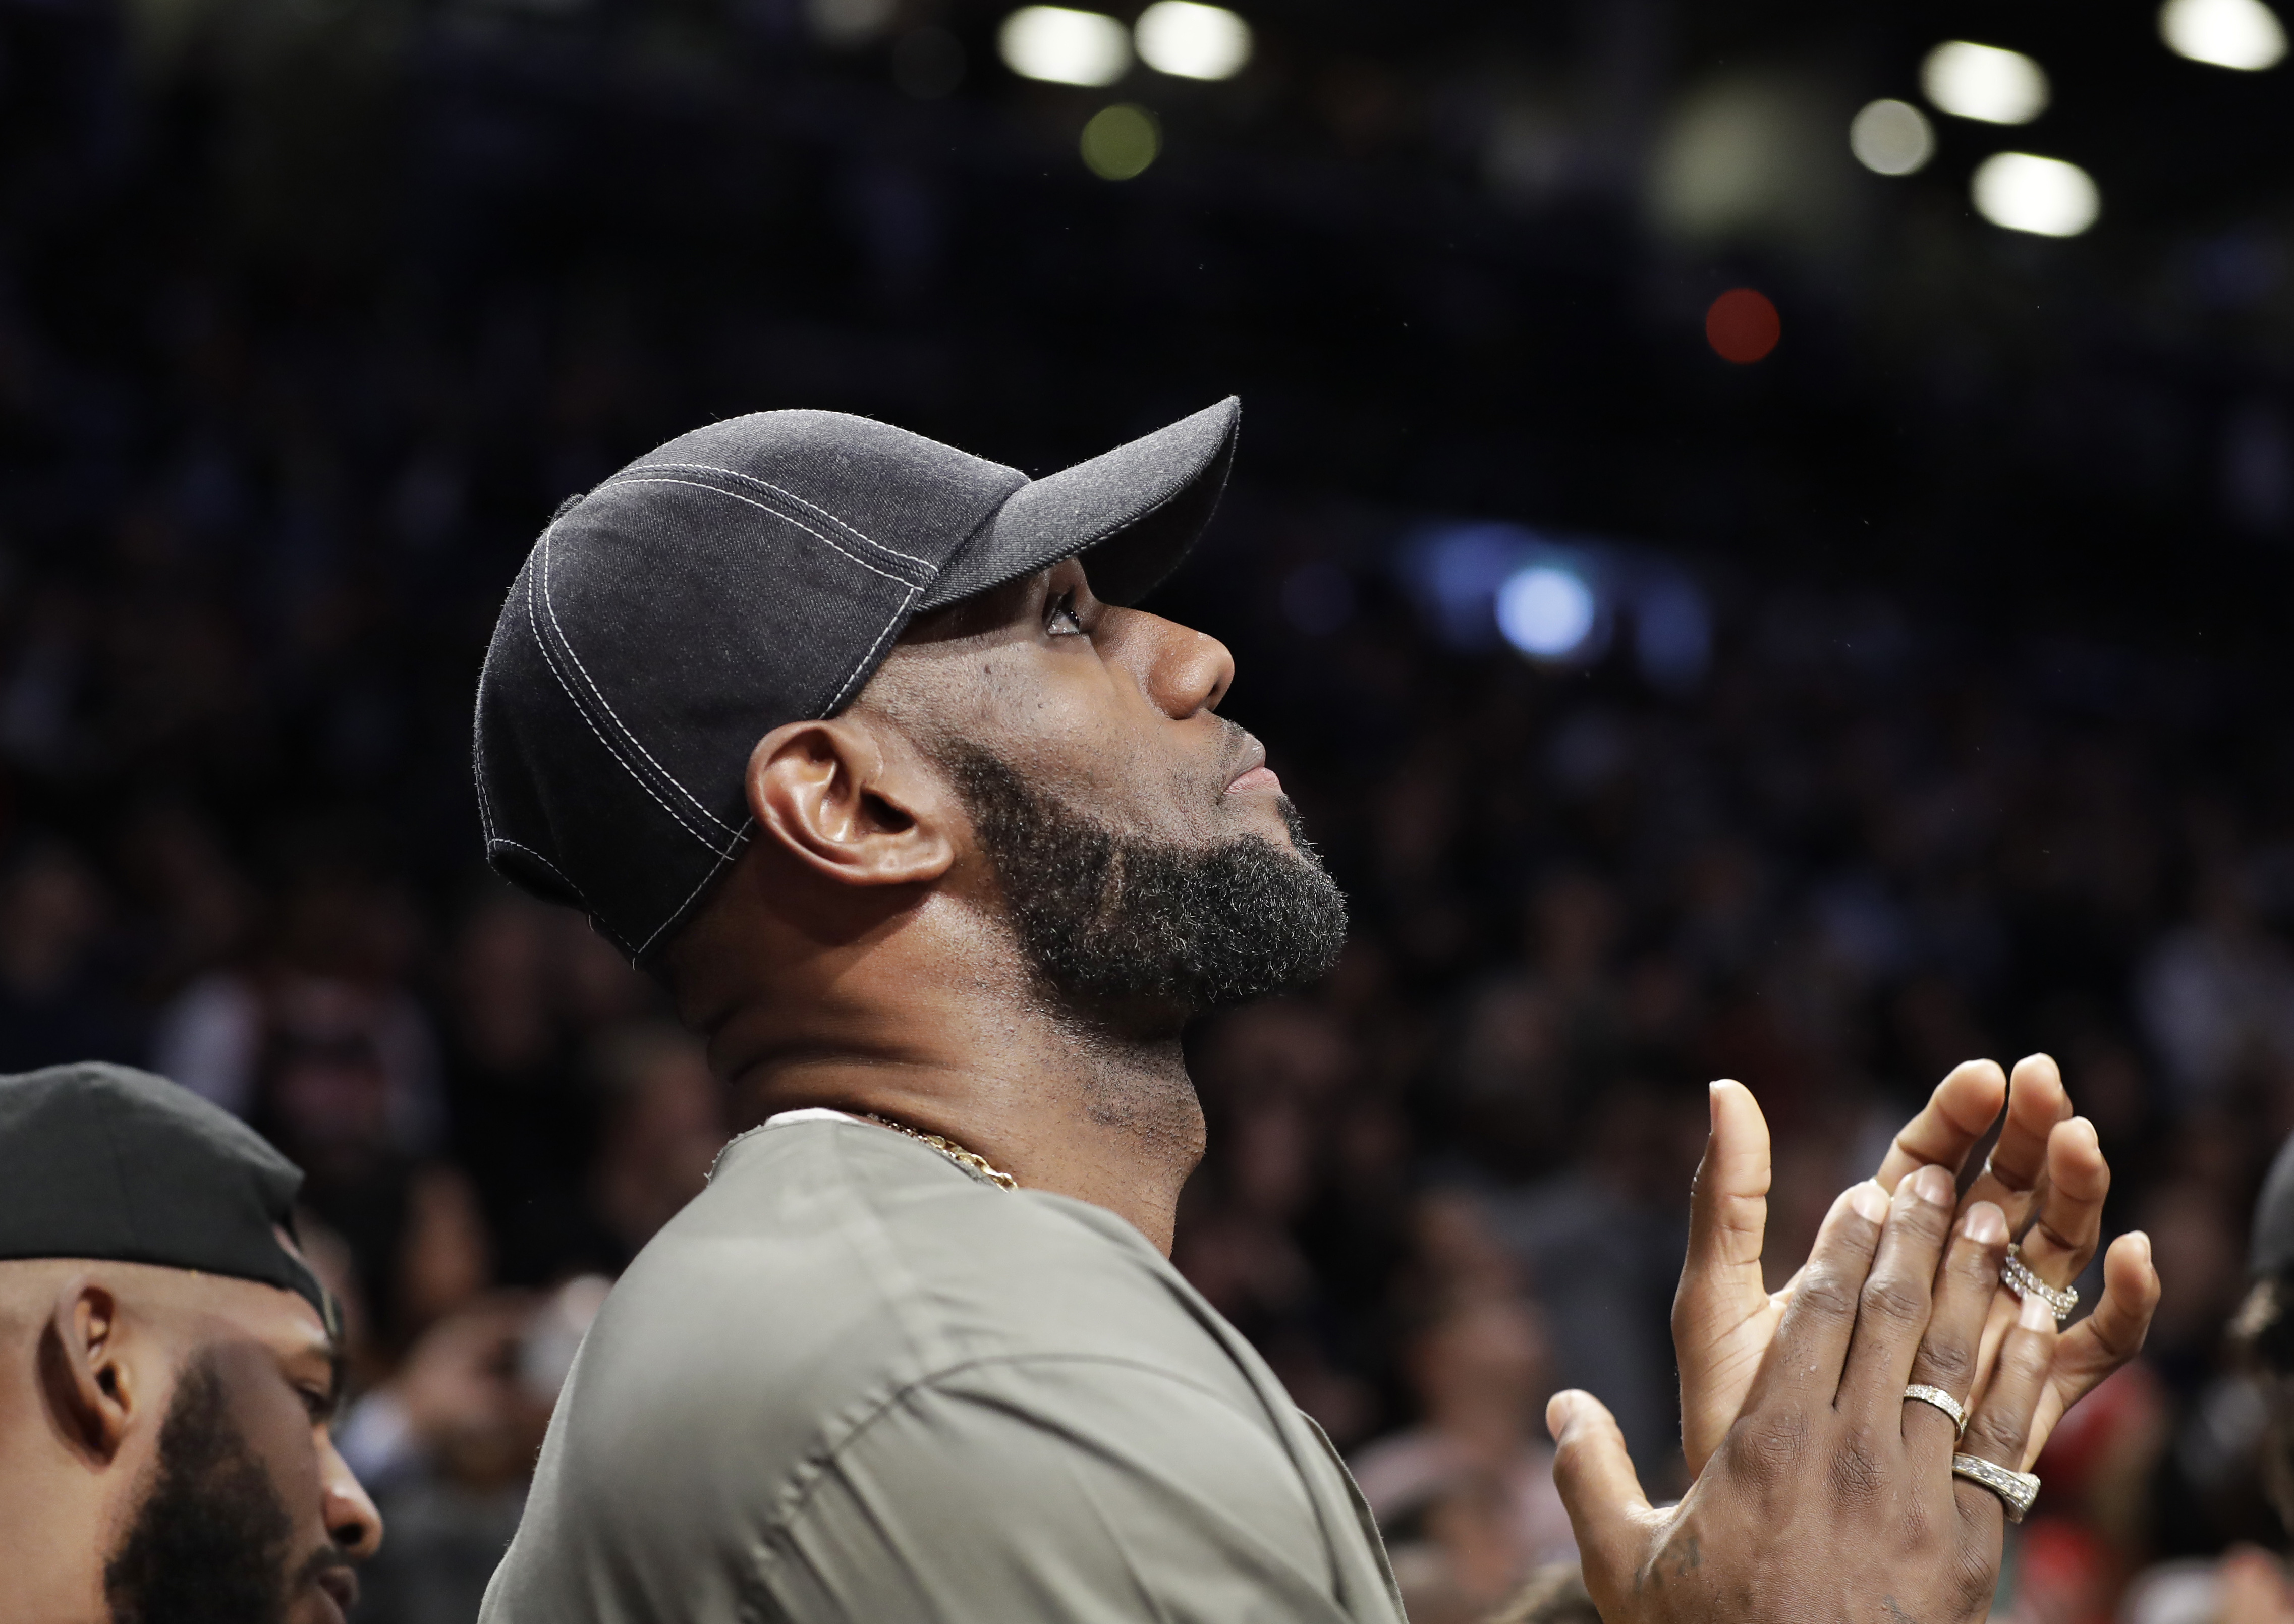 LeBron James applauds as he watches on a giant overhead video screen as a member of the military is honored during a timeout in the first half of an NBA game between the Brooklyn Nets and the Miami Heat, Wednesday, April 10, 2019, in New York. James and o